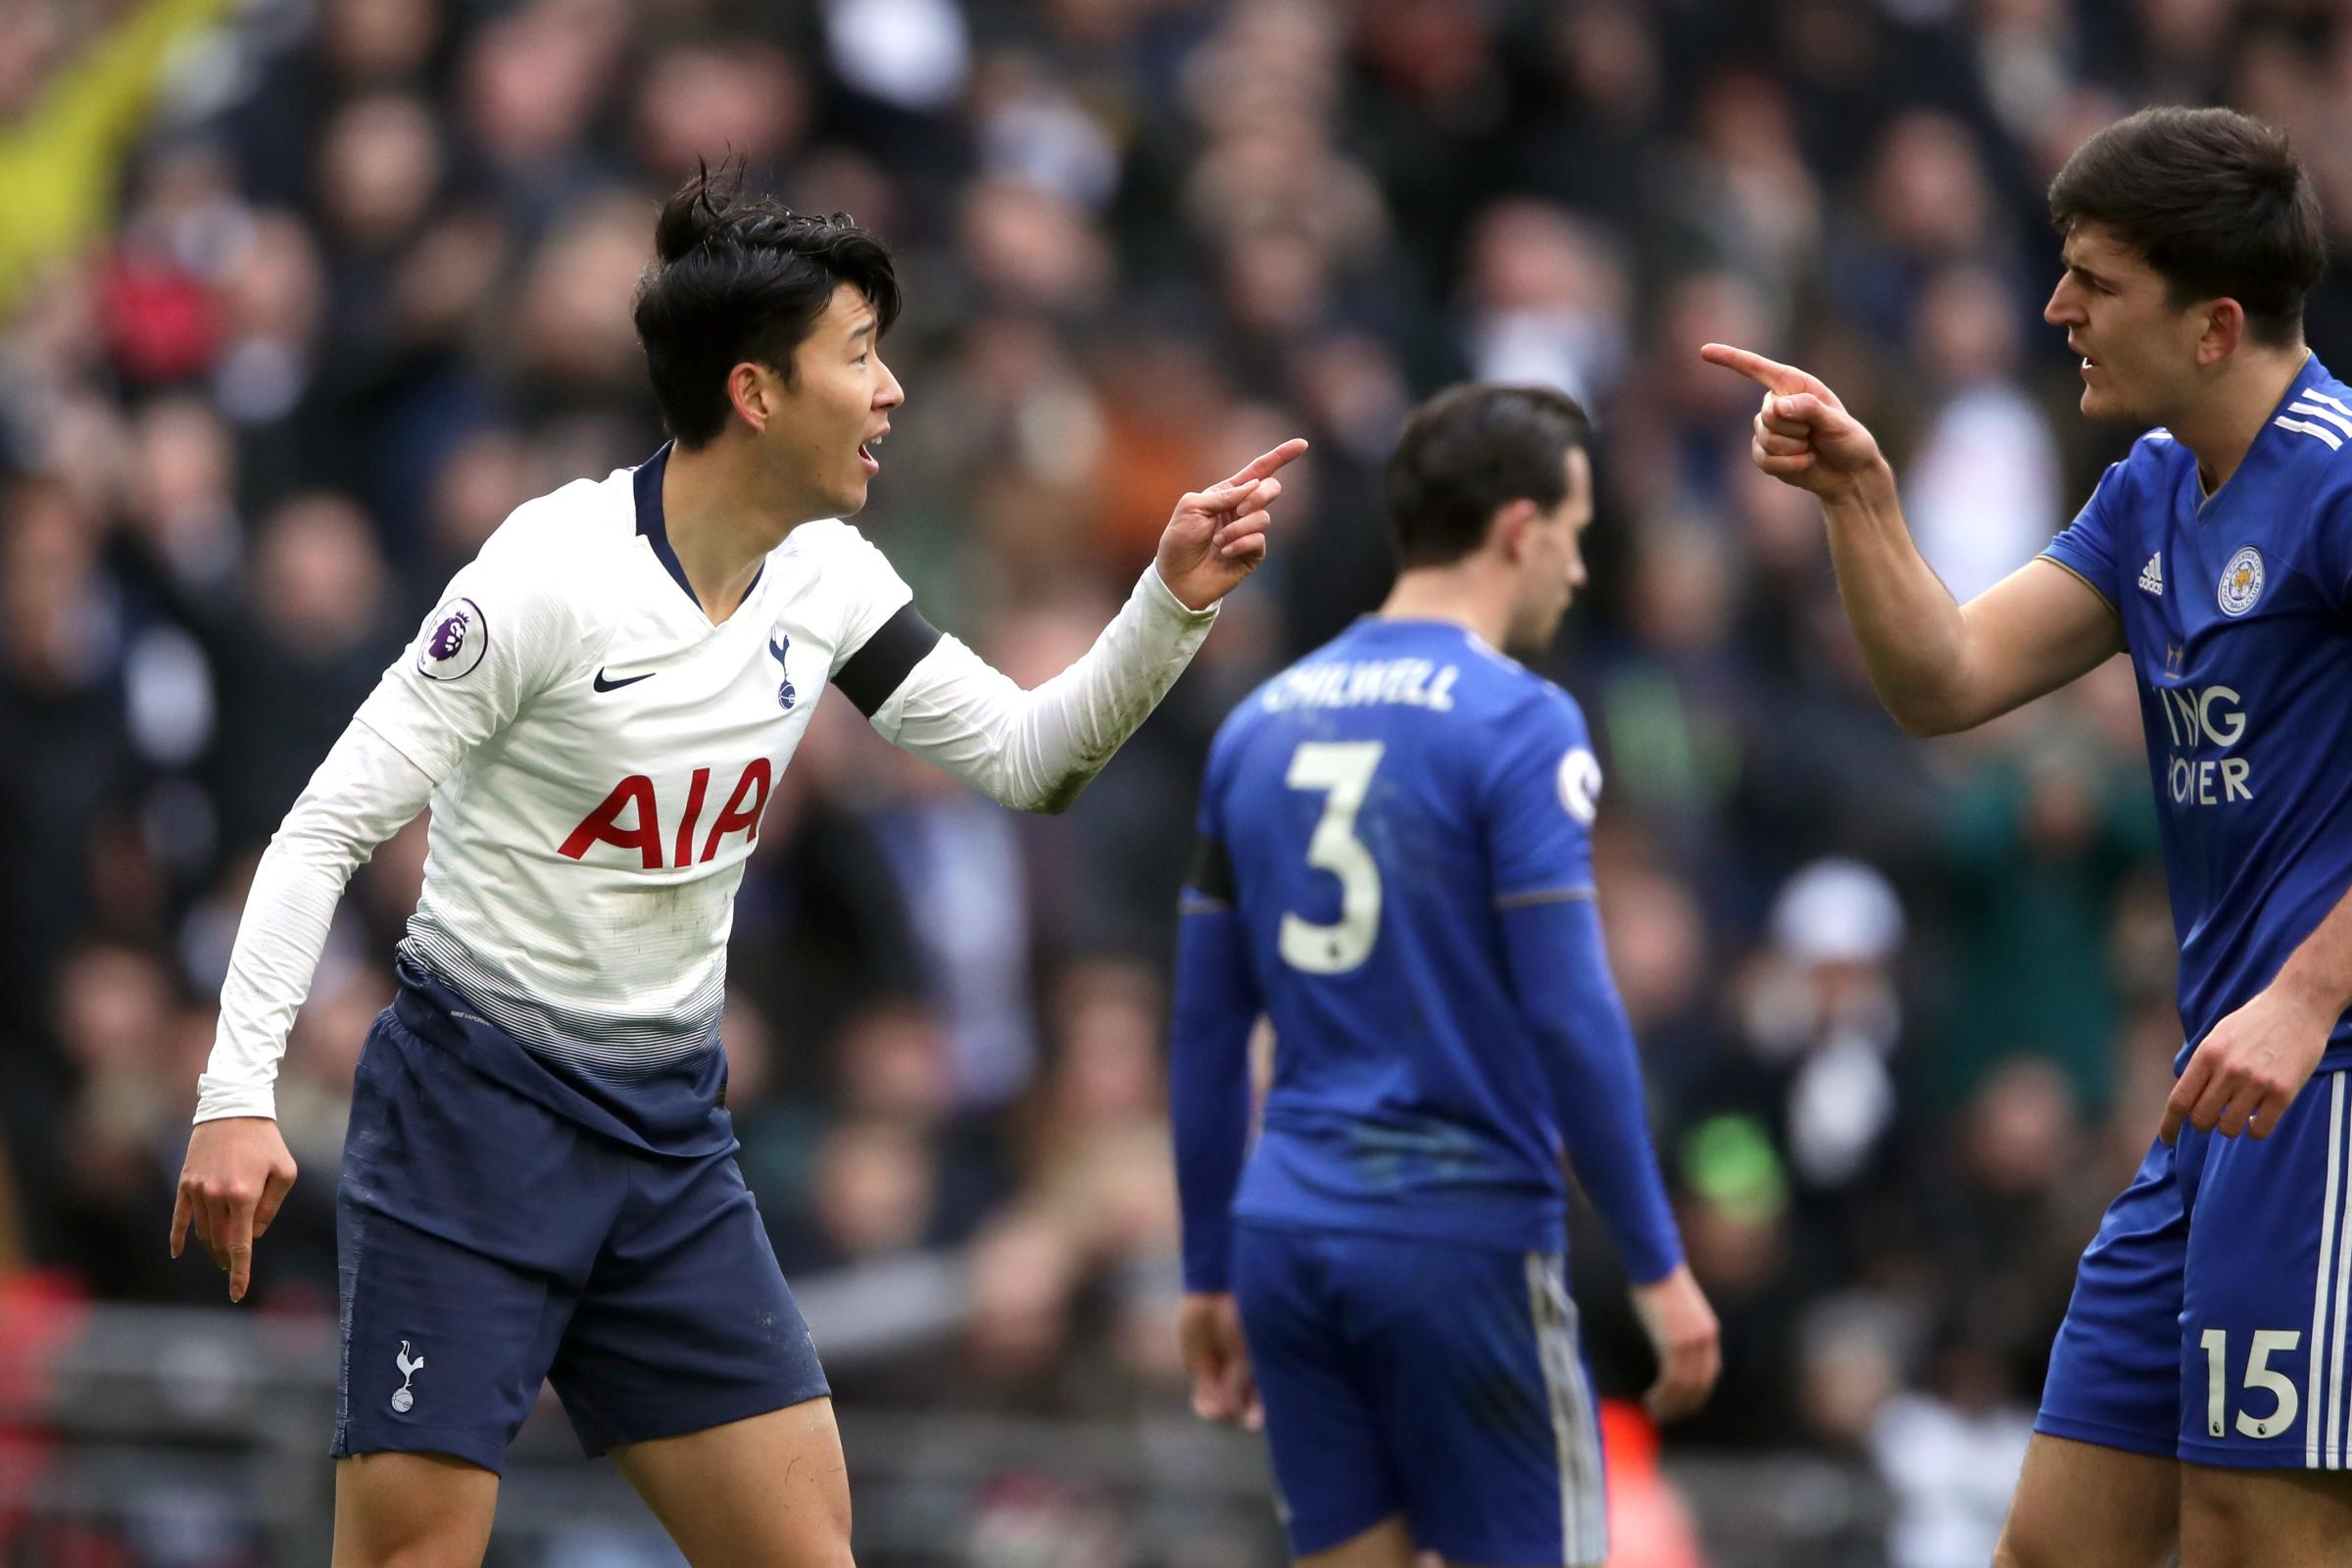 Son Heung-min was booked for diving at Wembley